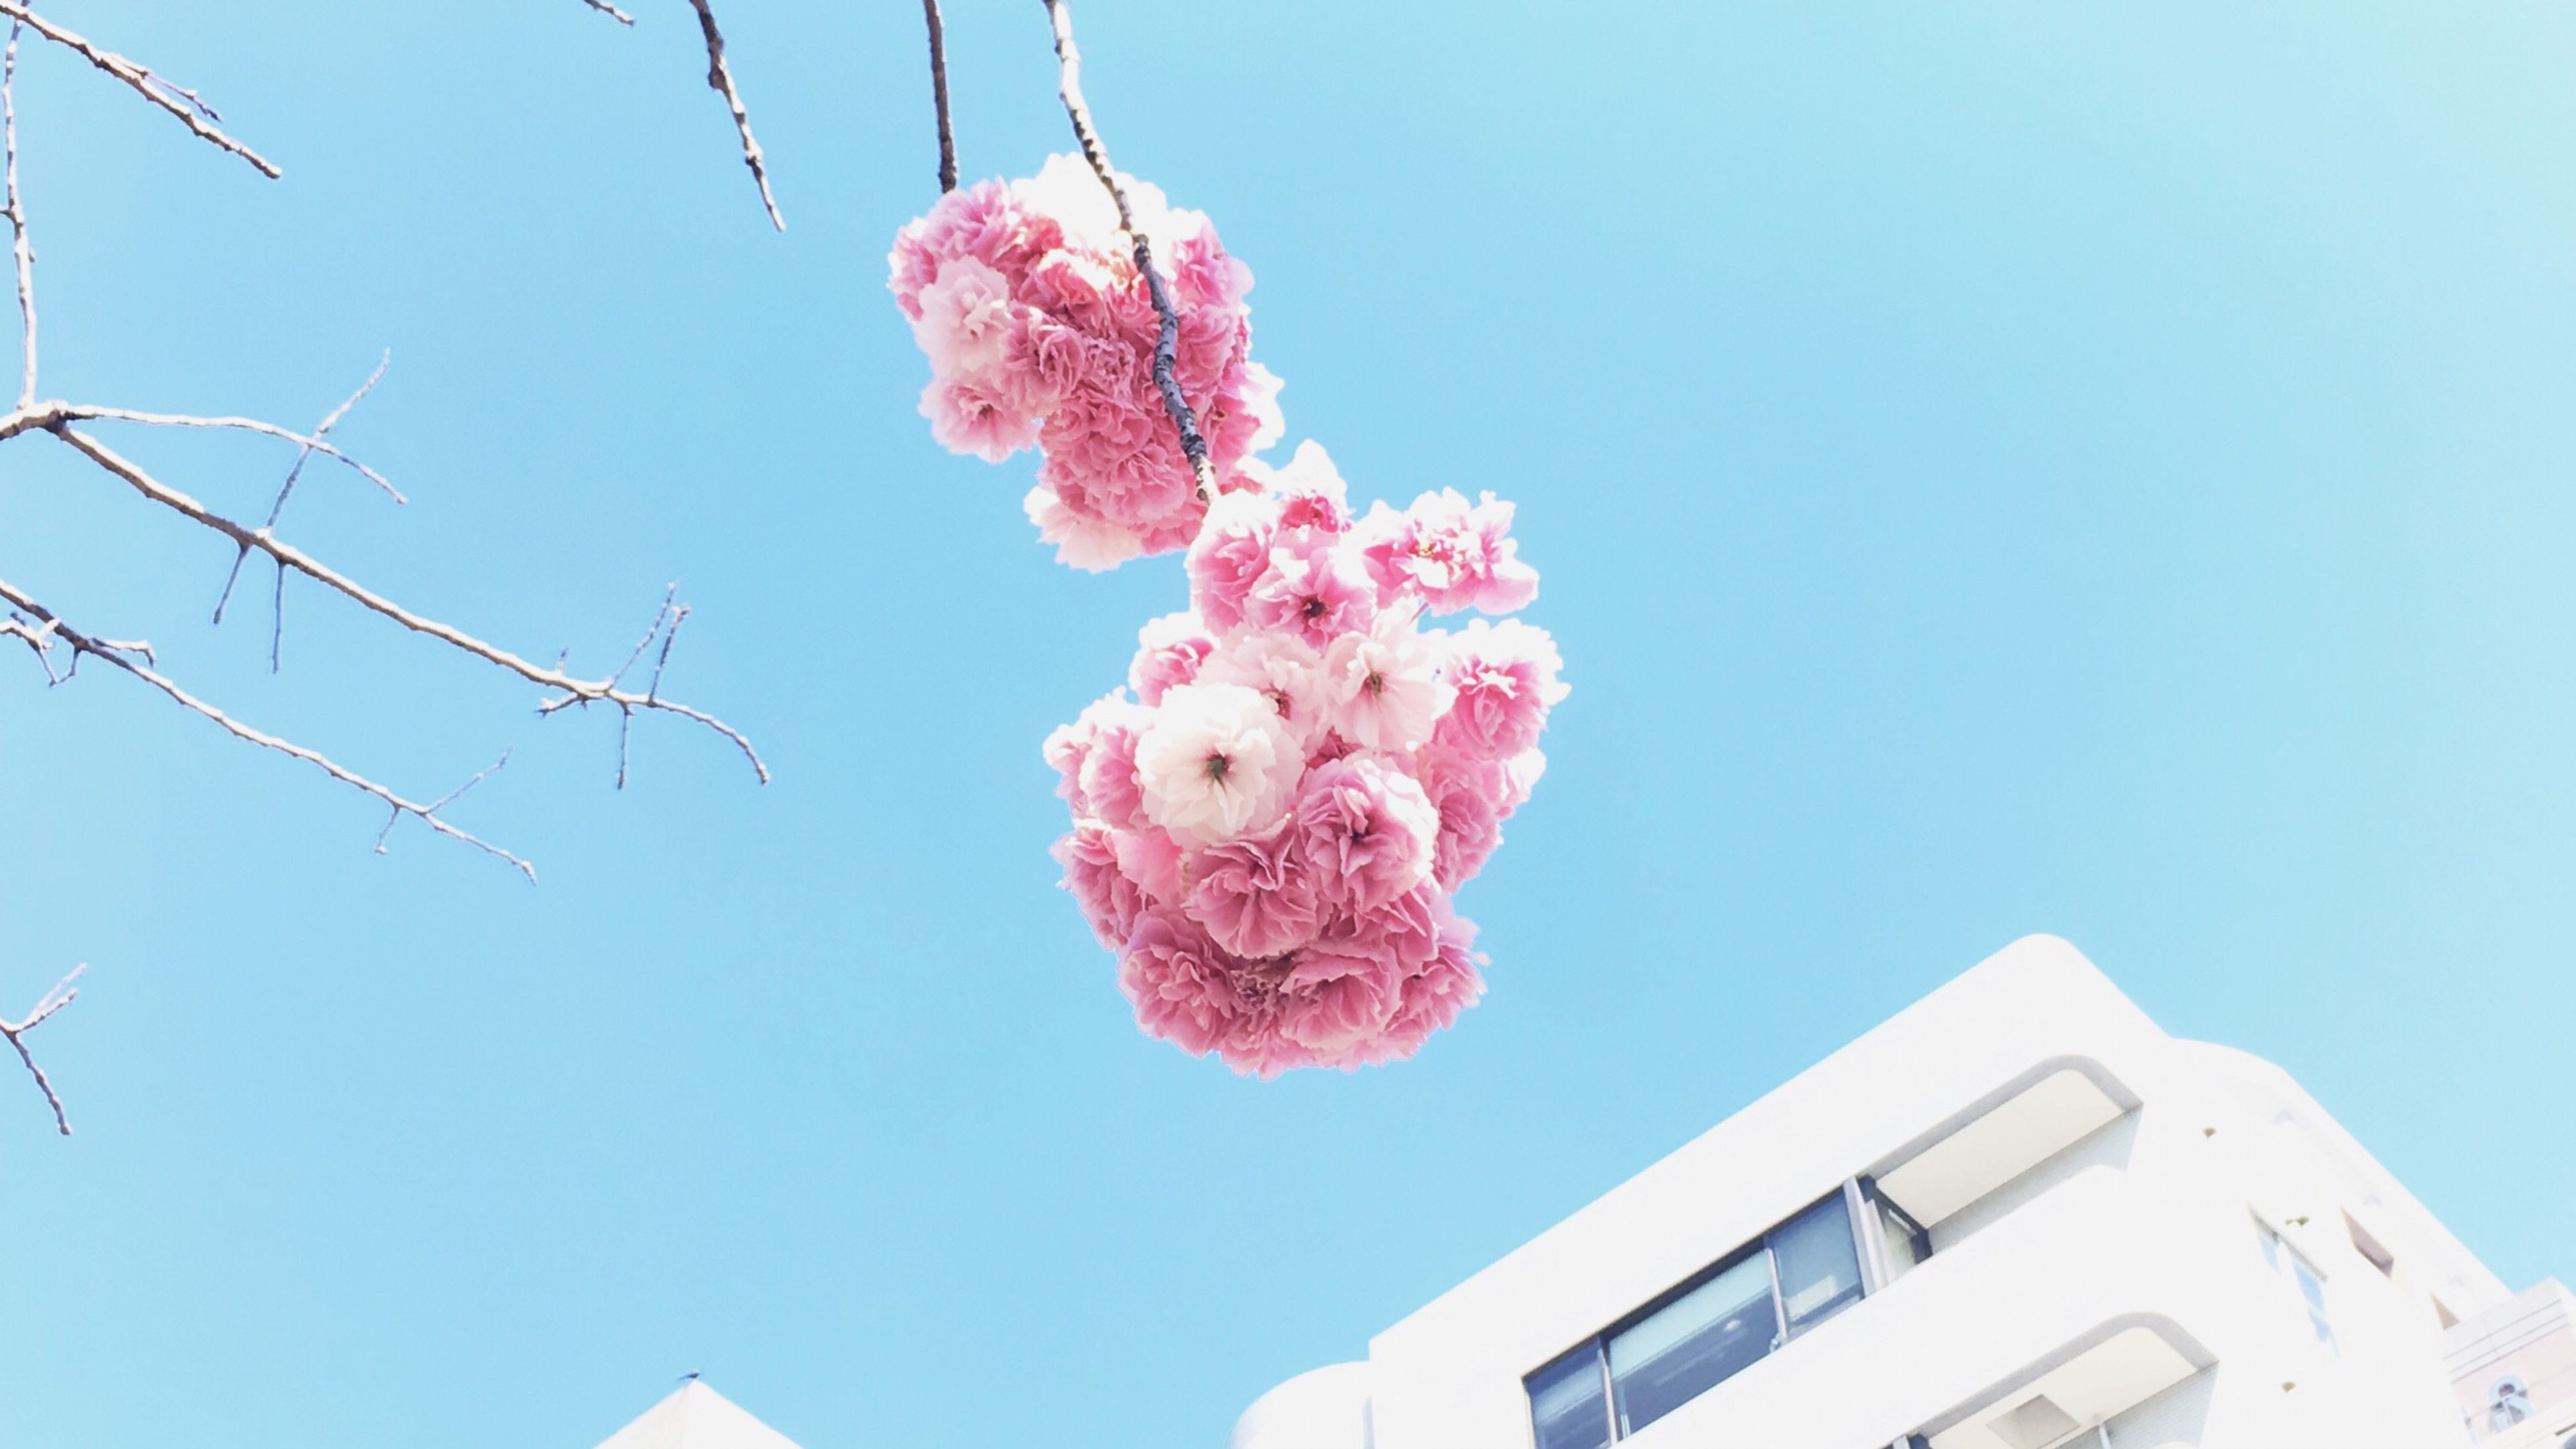 pink color, flower, low angle view, day, clear sky, outdoors, no people, fragility, building exterior, sky, nature, sunlight, built structure, beauty in nature, architecture, close-up, freshness, flower head